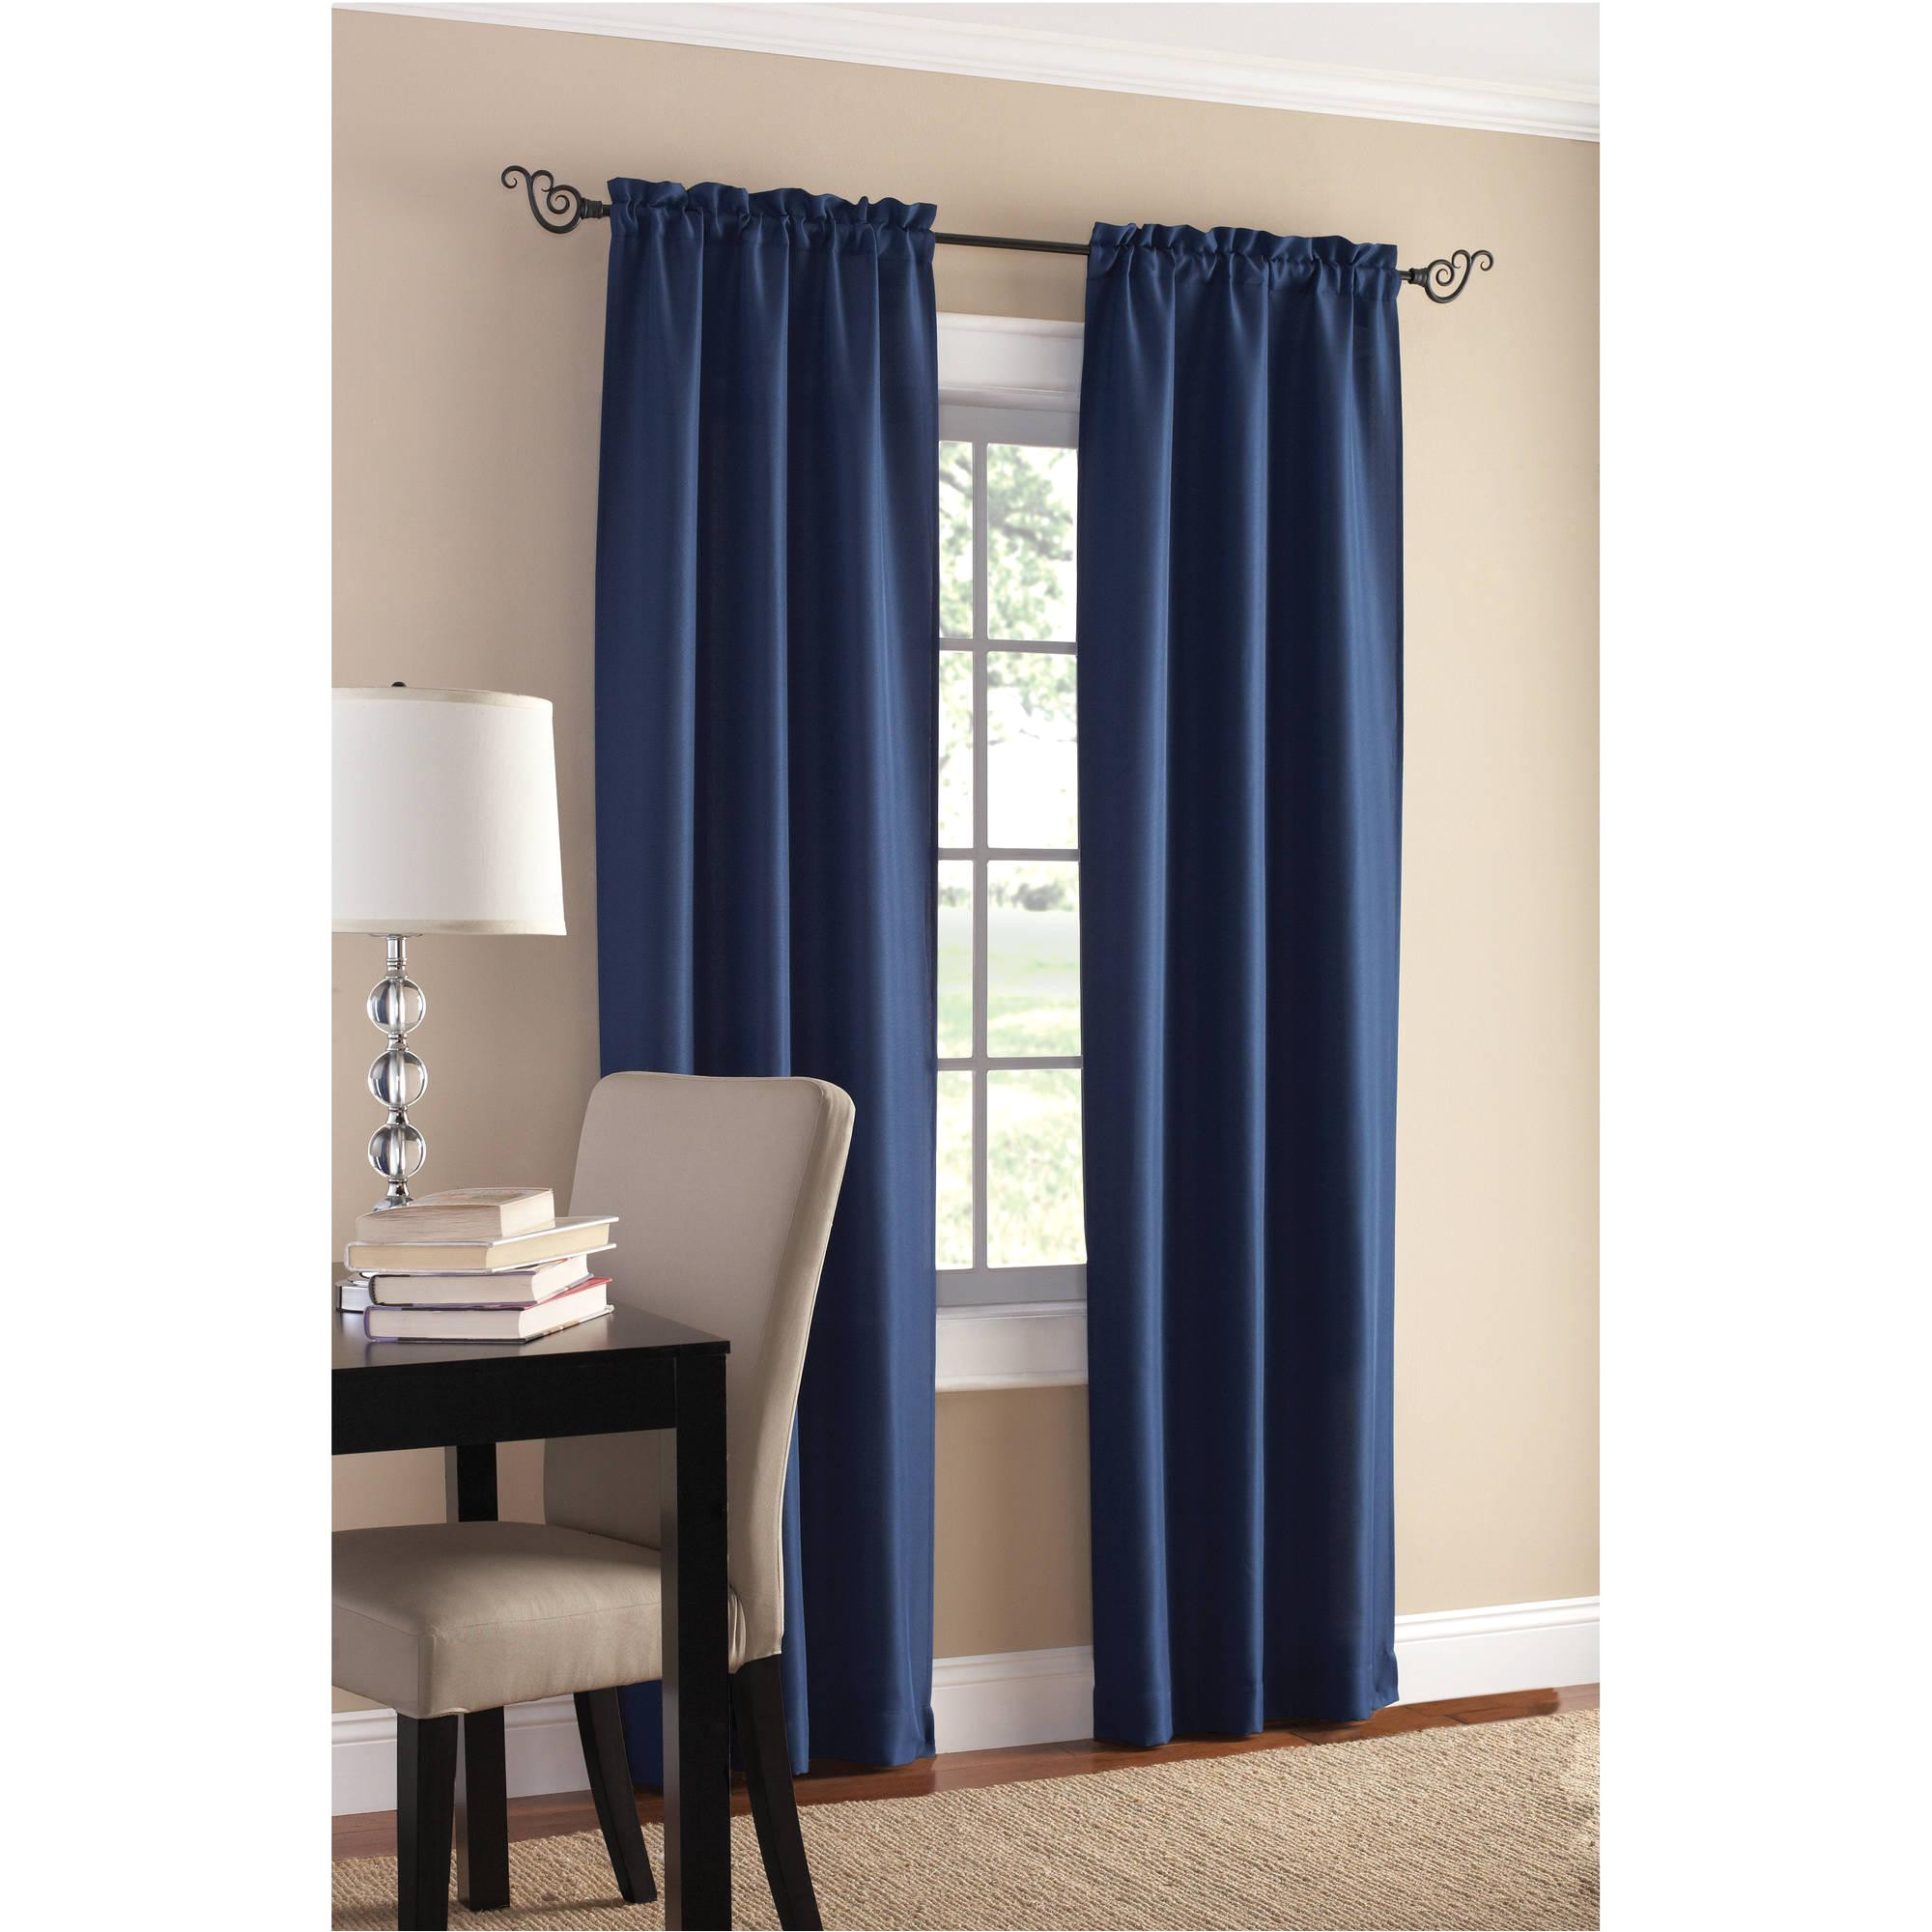 blue walmart blackout curtains with white baseboard and